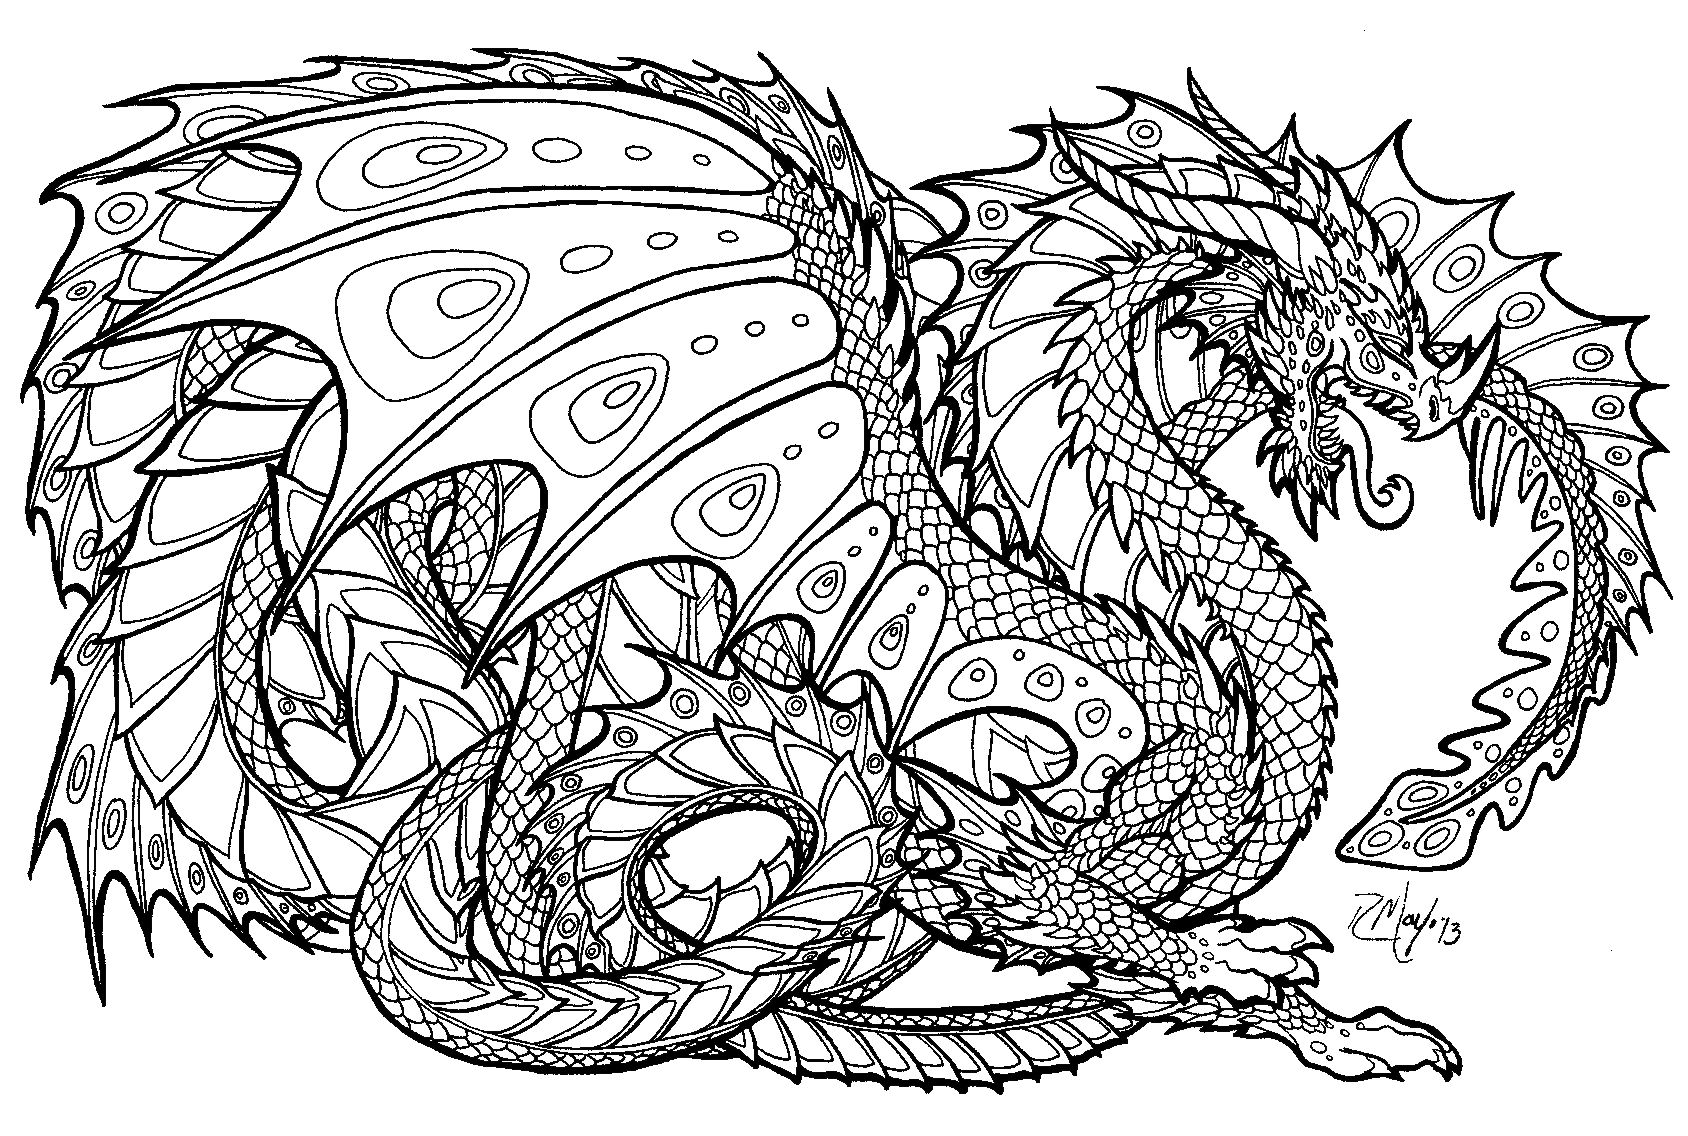 Amazing Of Simple Dragon Coloring Pages Online Dragon Col 630 Boyama Sayfalari Ejderhalar Desenler